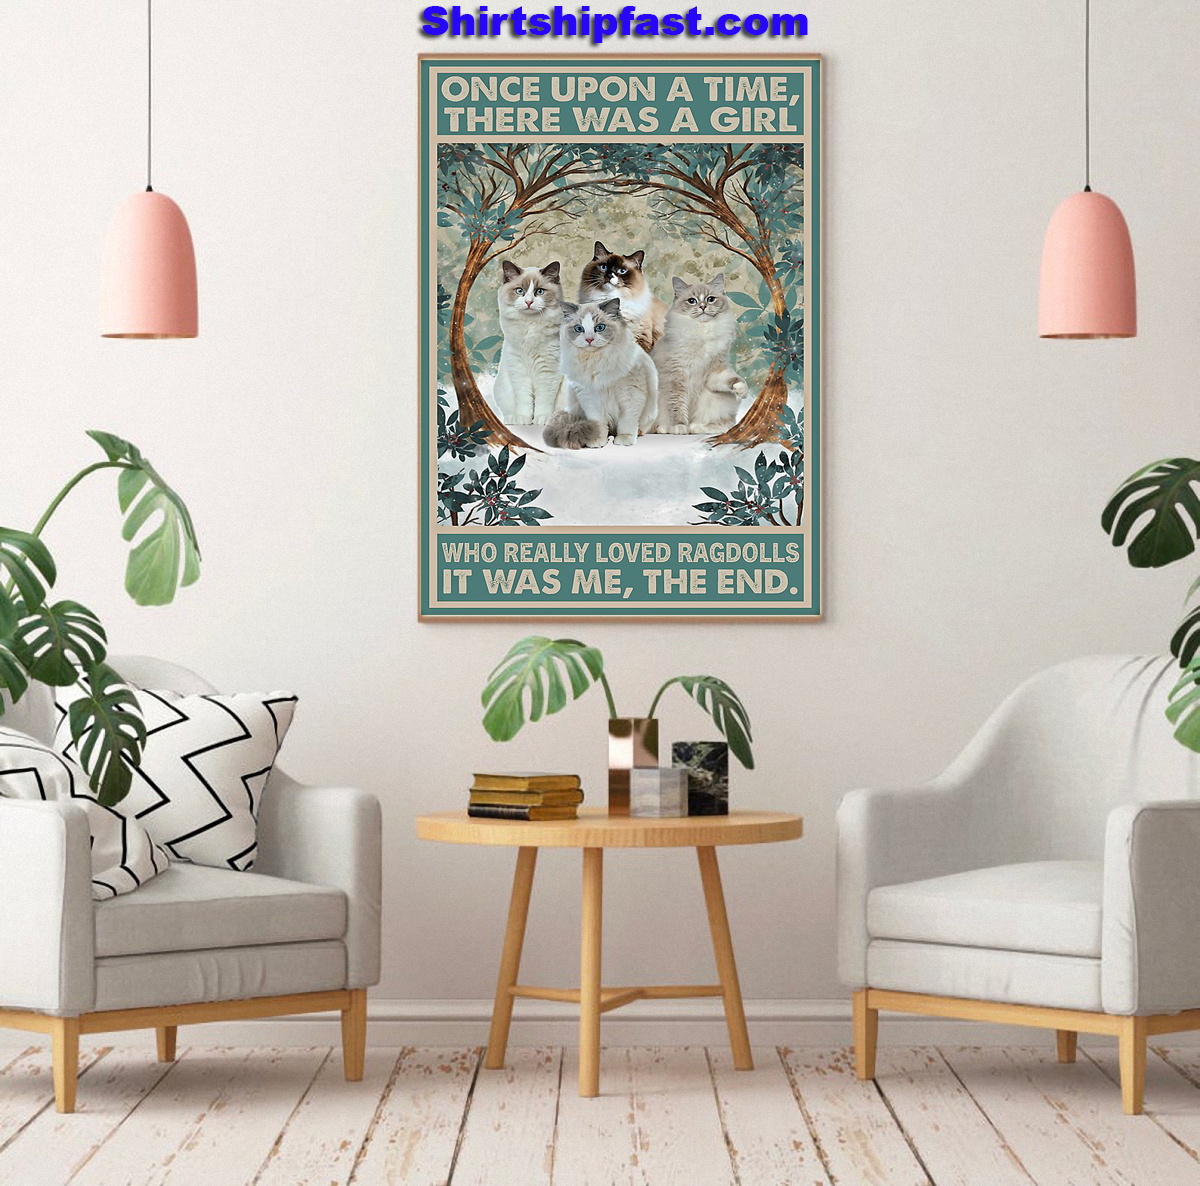 Ragdoll Once upon a time there was a girl who really loved ragdolls poster - Picture 2